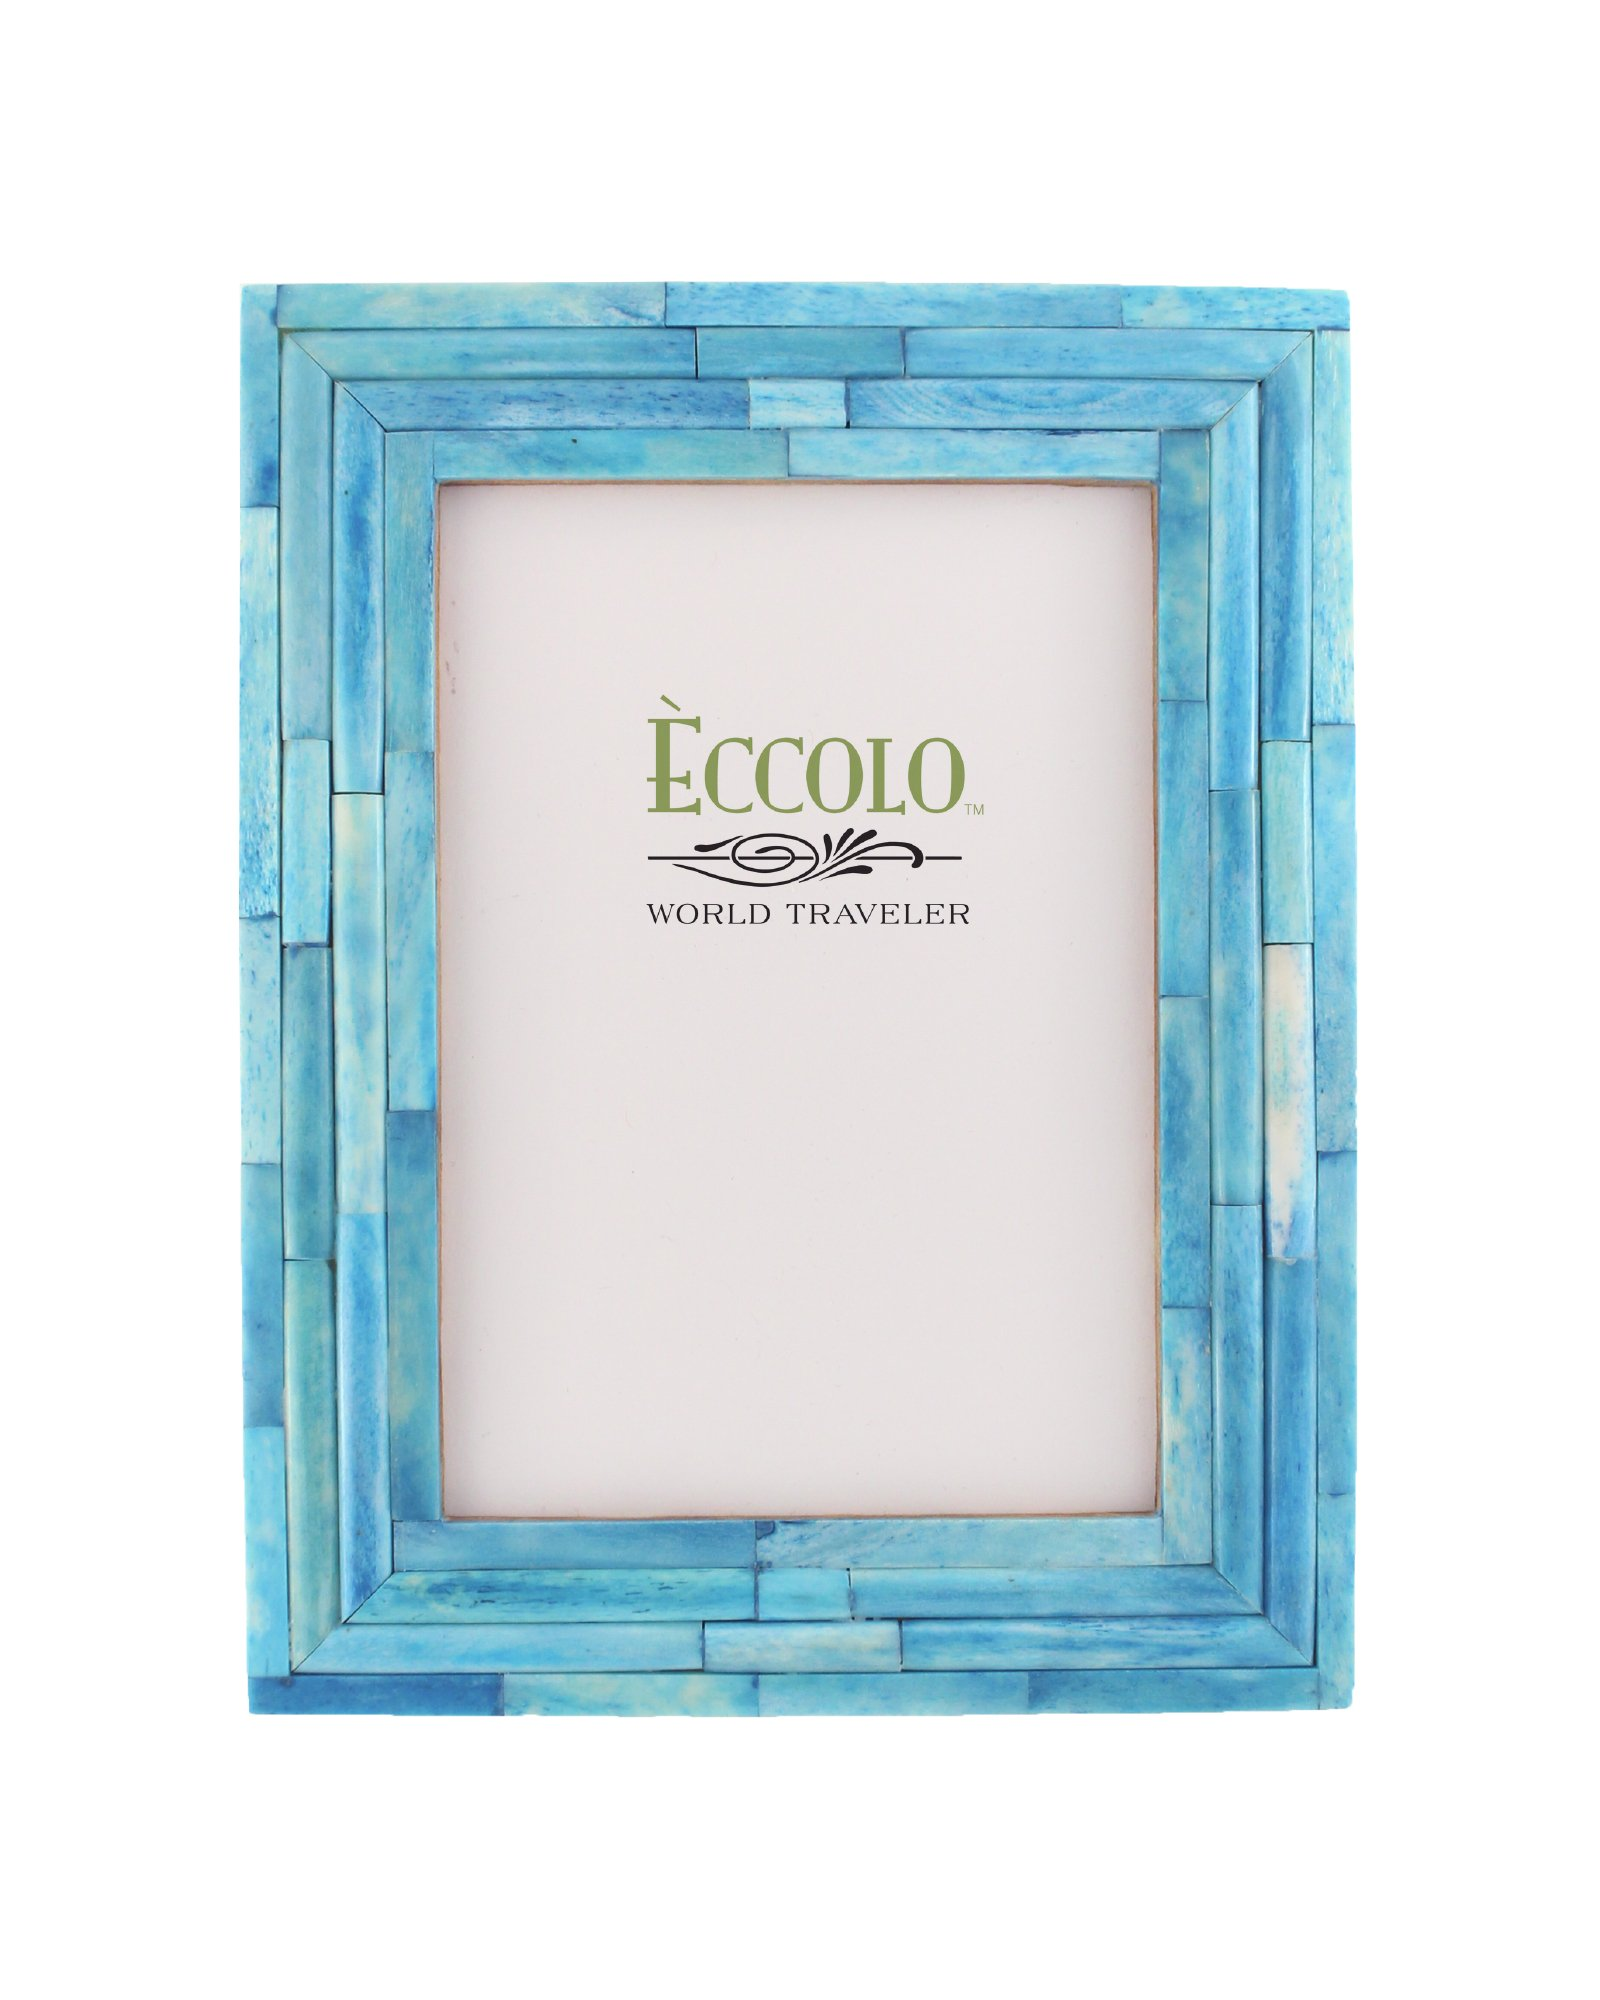 Eccolo World Traveler Naturals Collection Bangalore Raised Interior Frame, Holds 5 by 7-Inch Photo, Turquoise